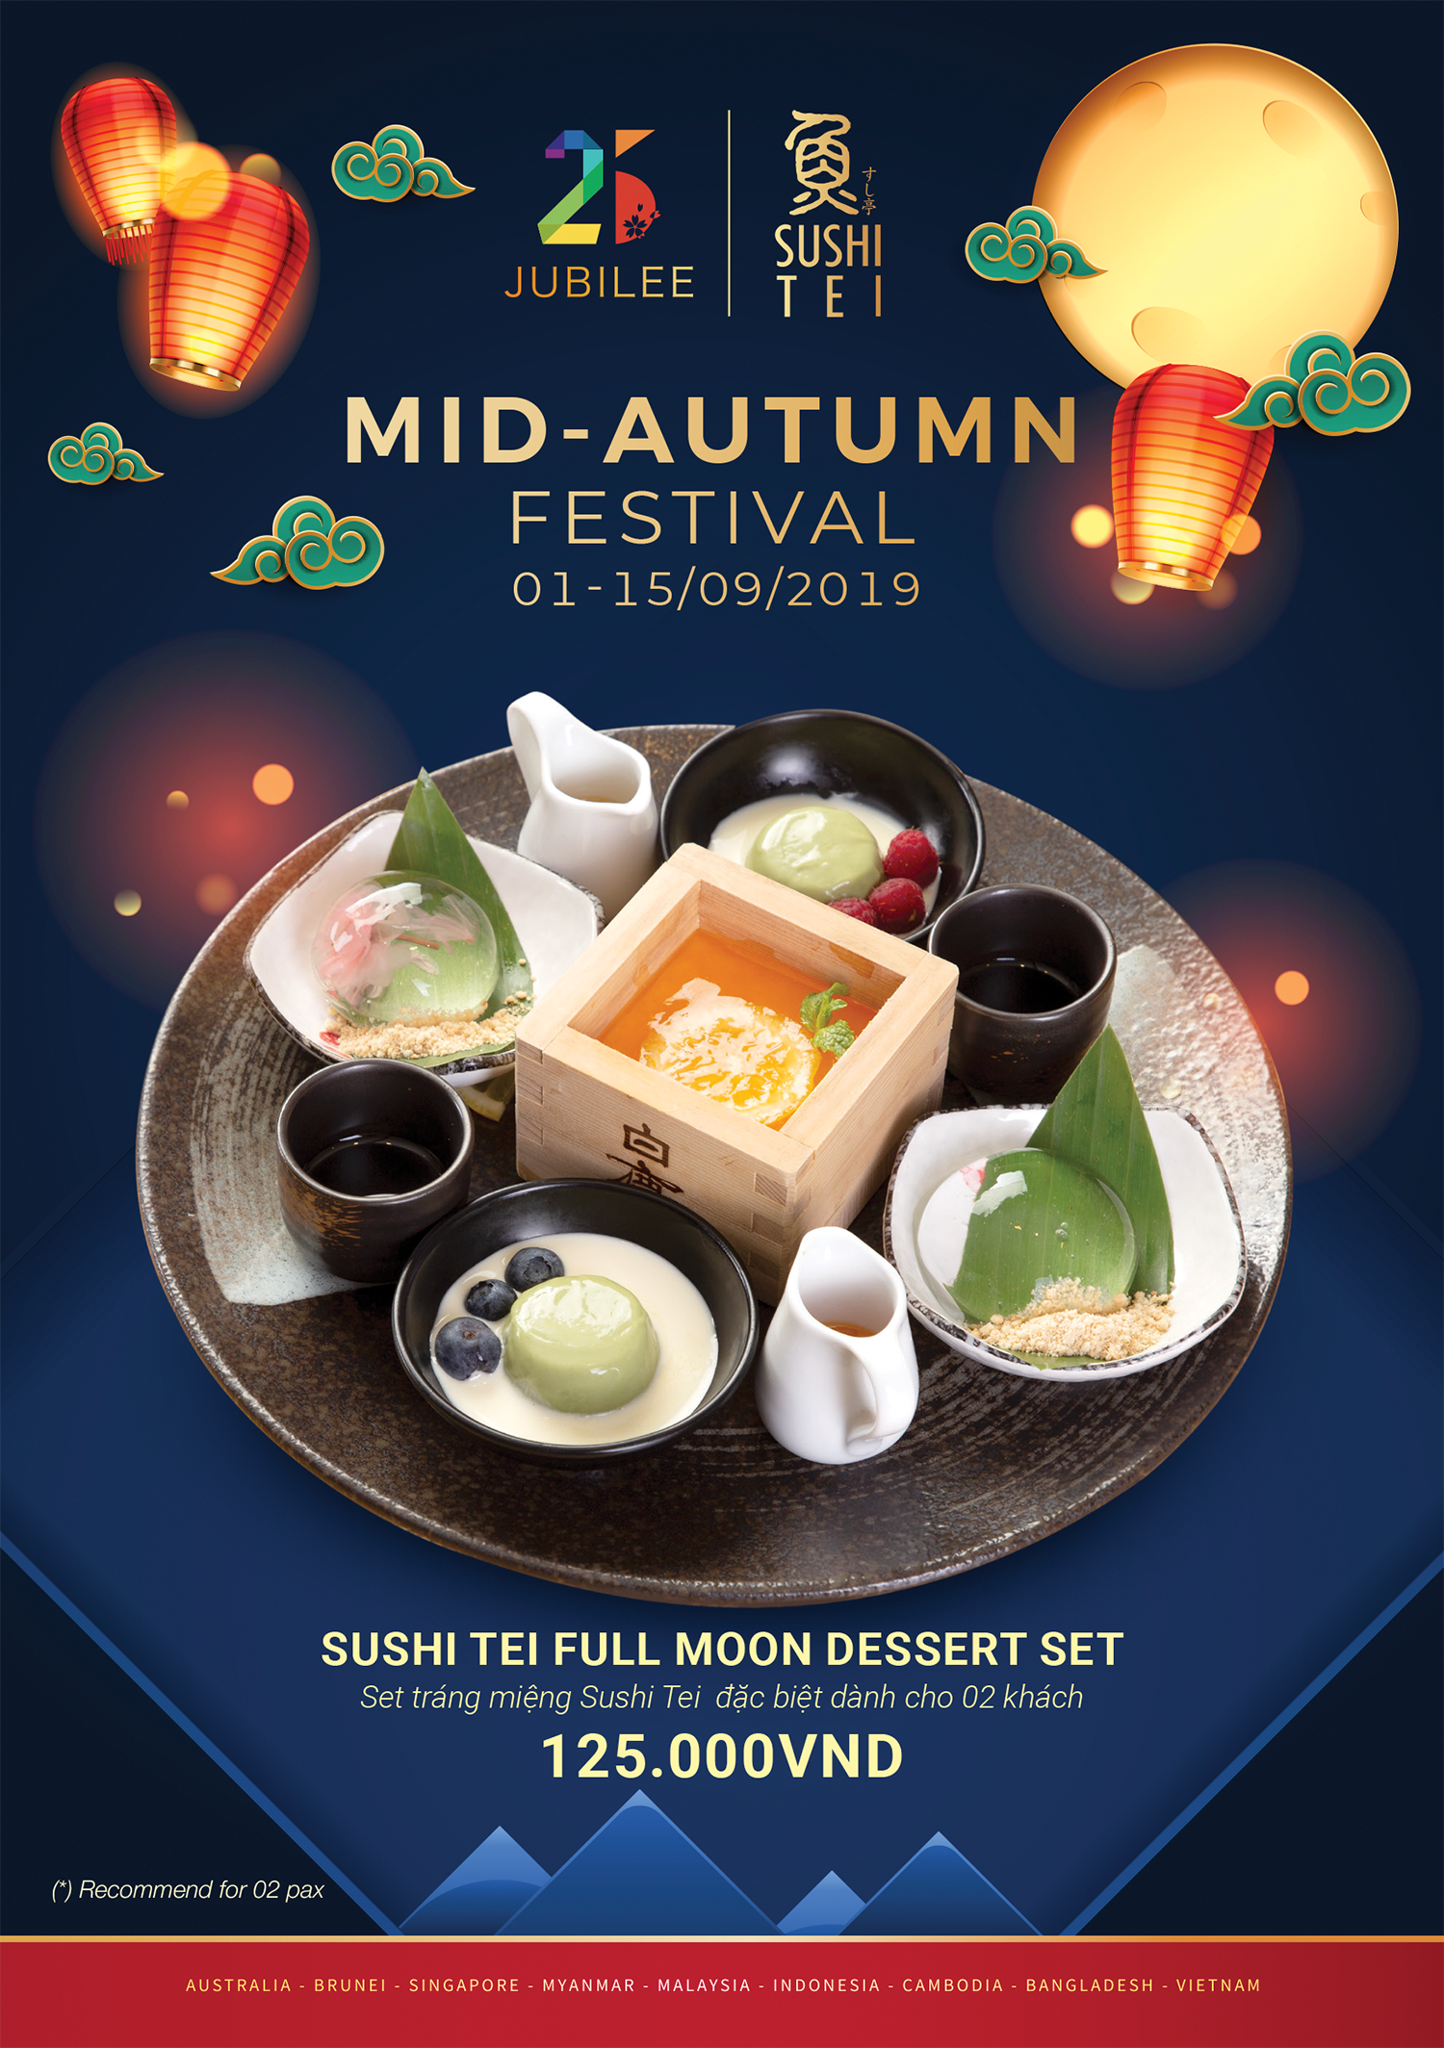 SUSHI TEI FULL-MOON DESSERT SET FOR 2 PAX